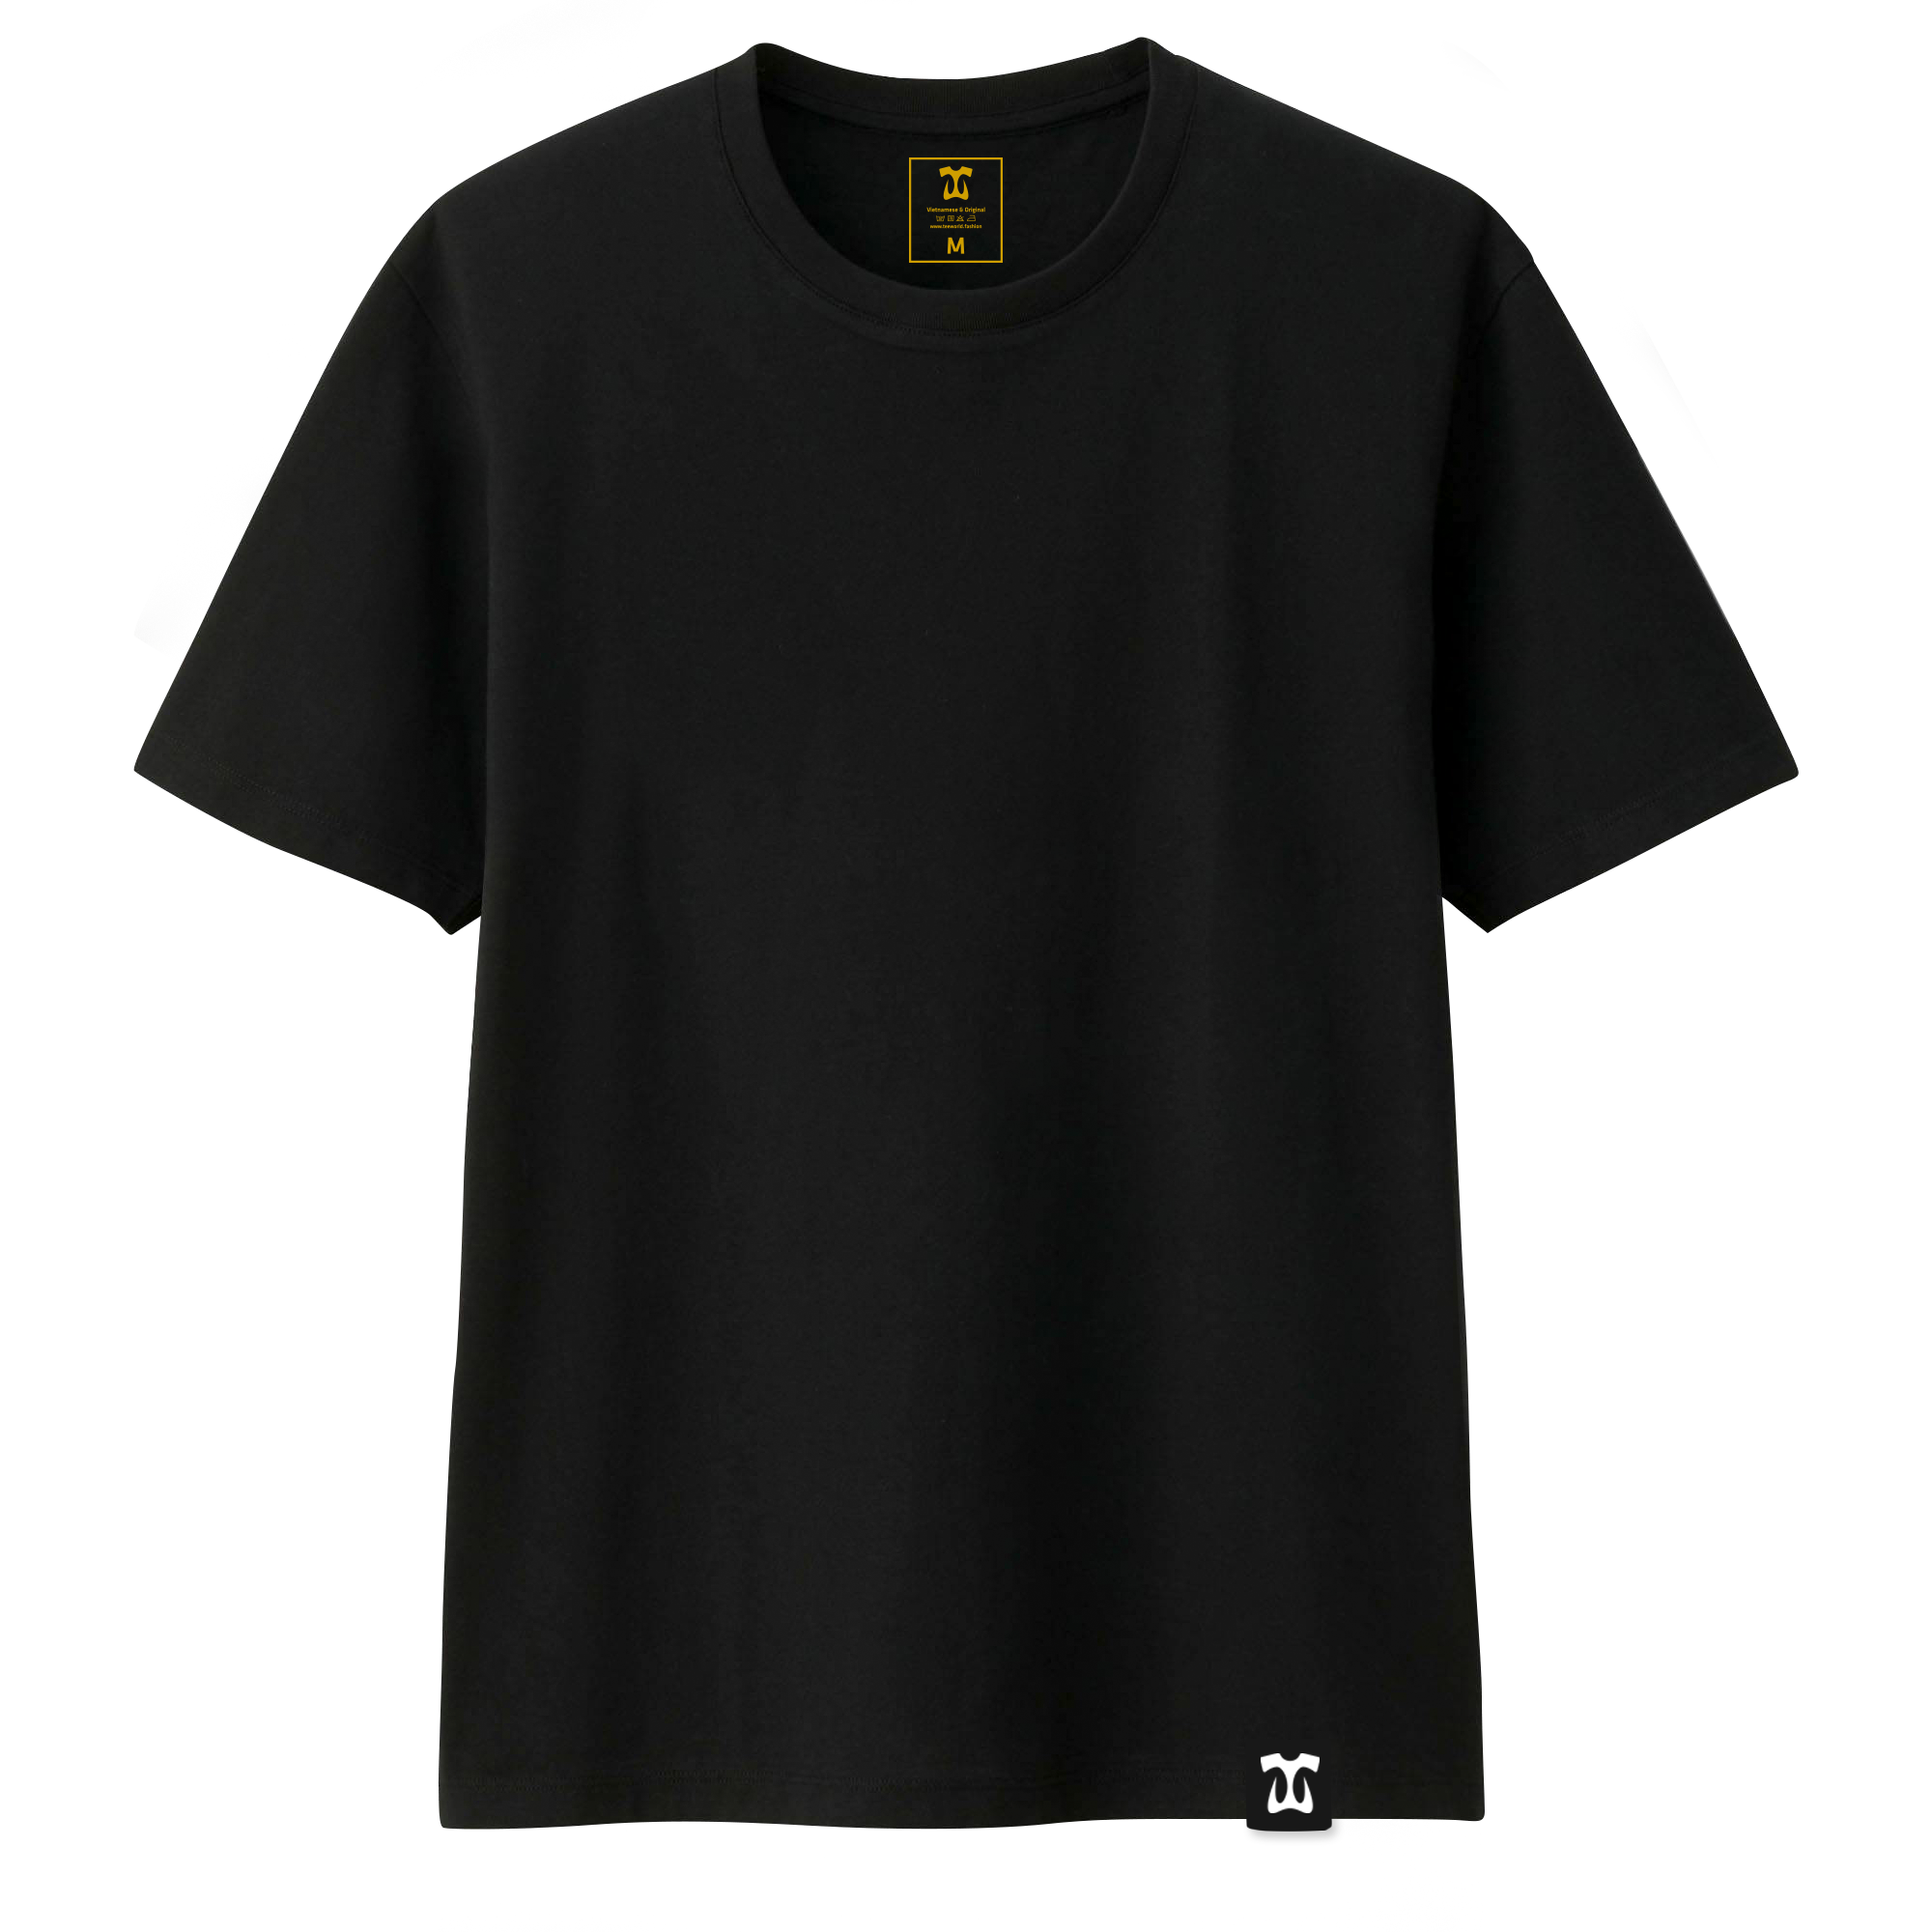 Teeworld Basic Tee Black Size XXL (65-75kg)